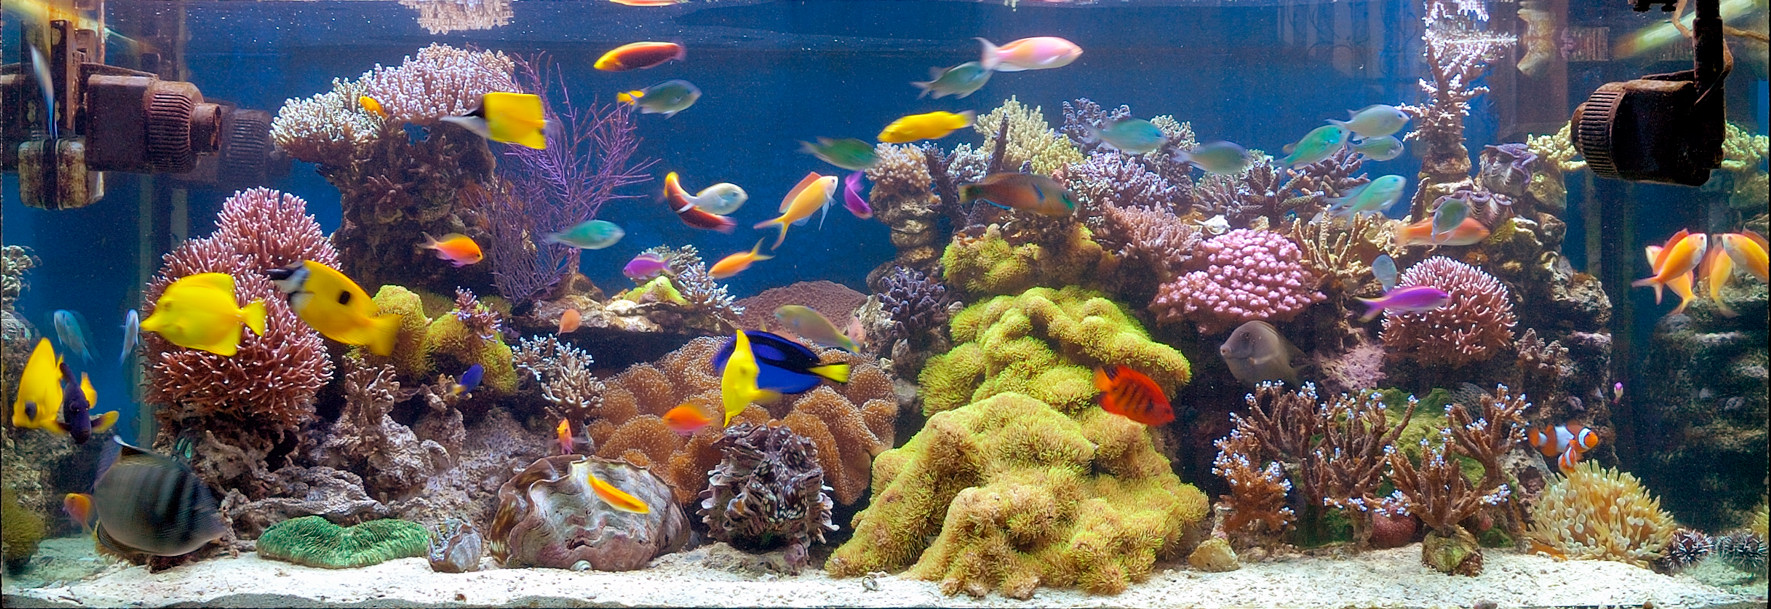 Best Fish Aquarium